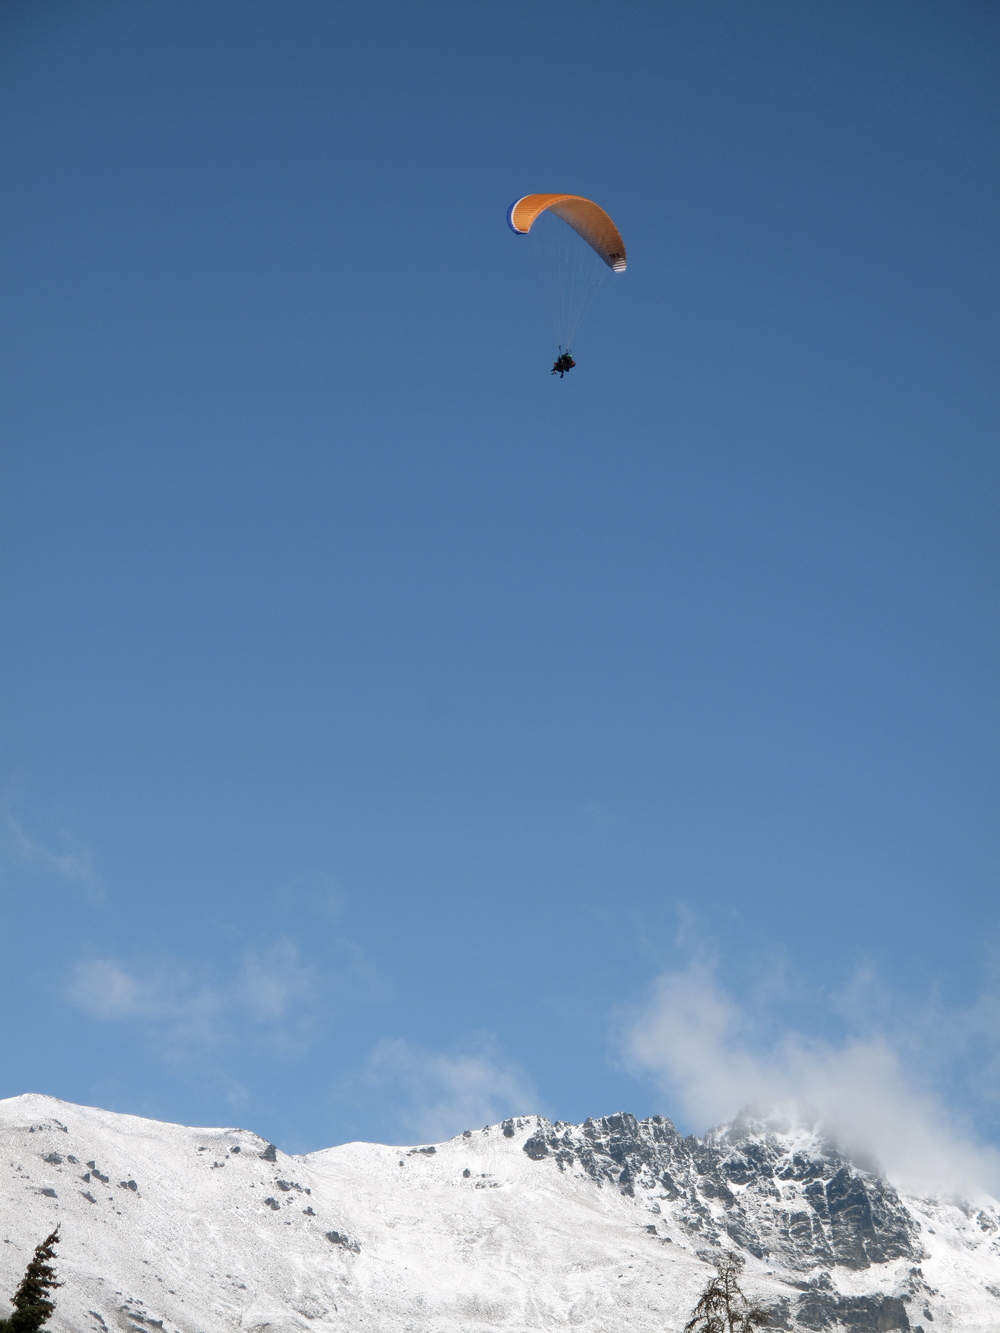 Parachuting in Queenstown above the mountains, NZ